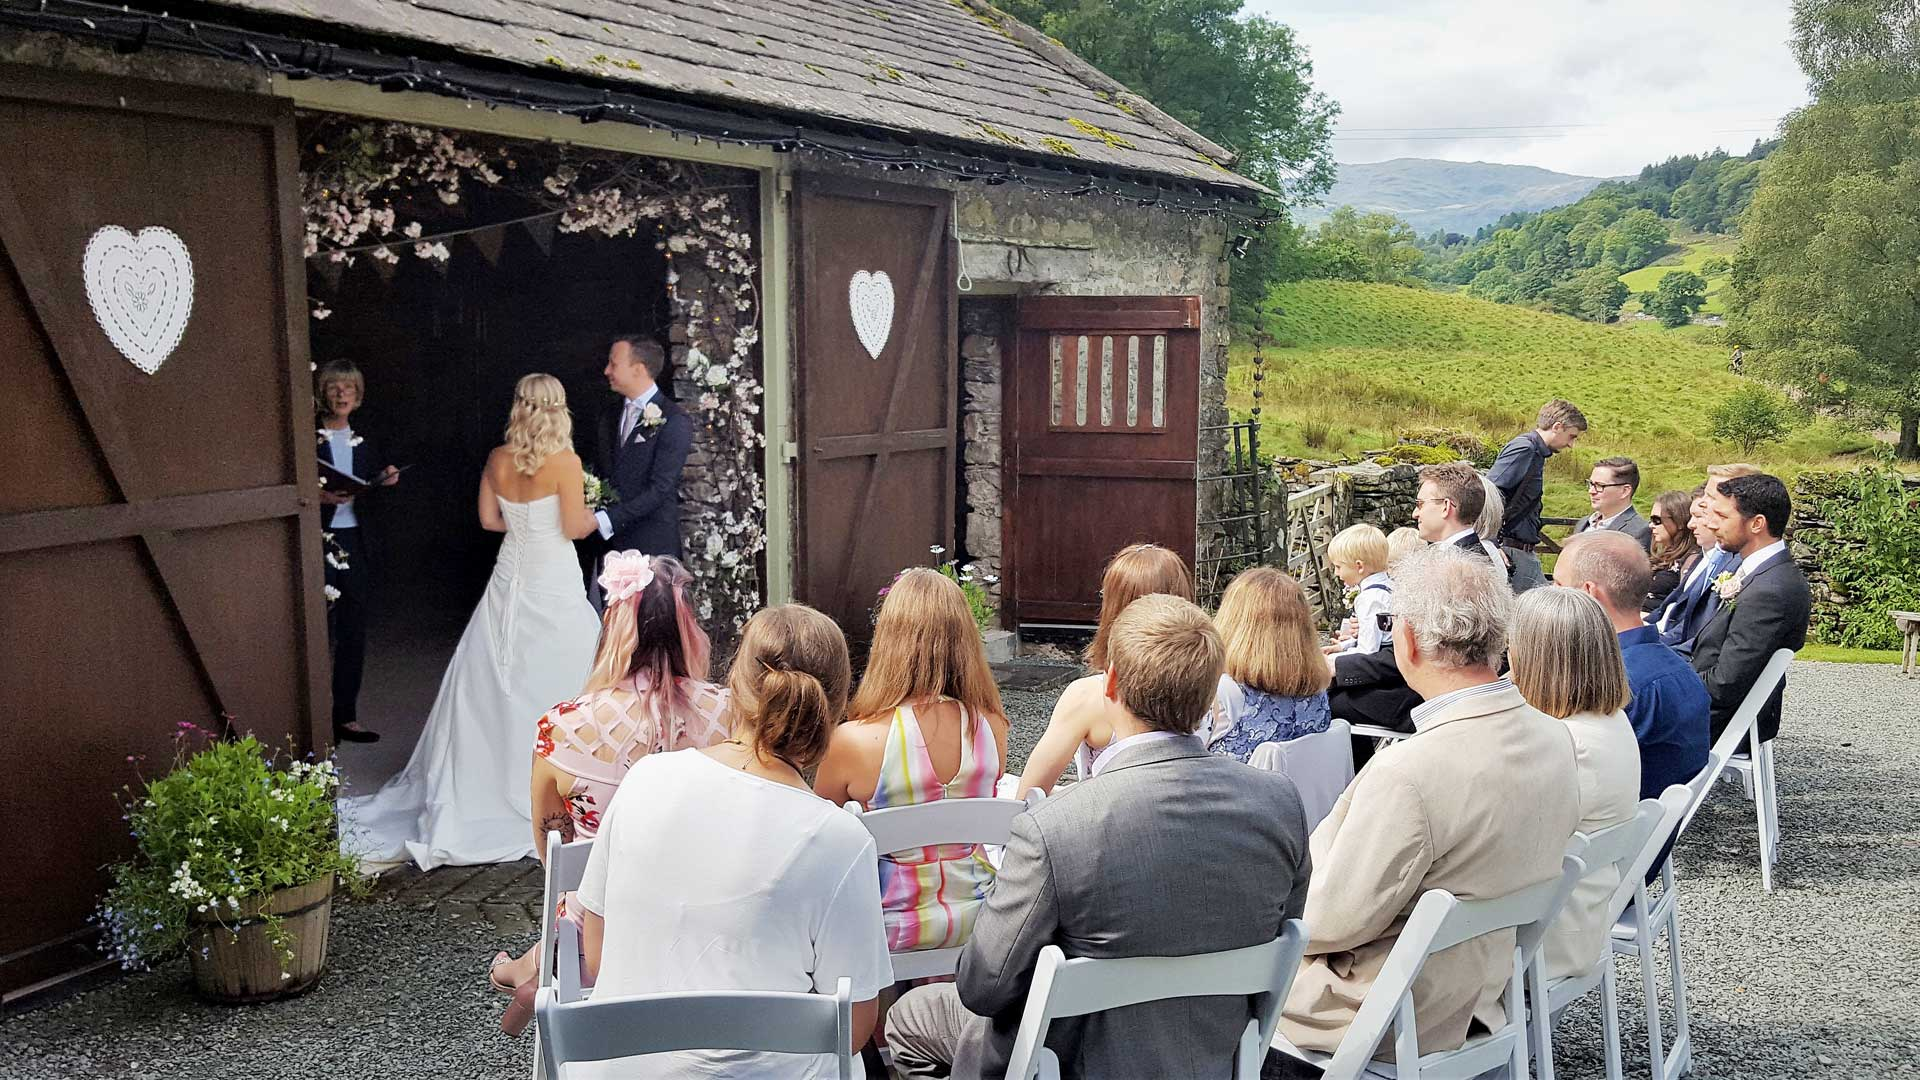 Small wedding ceremony outside the rustic barn